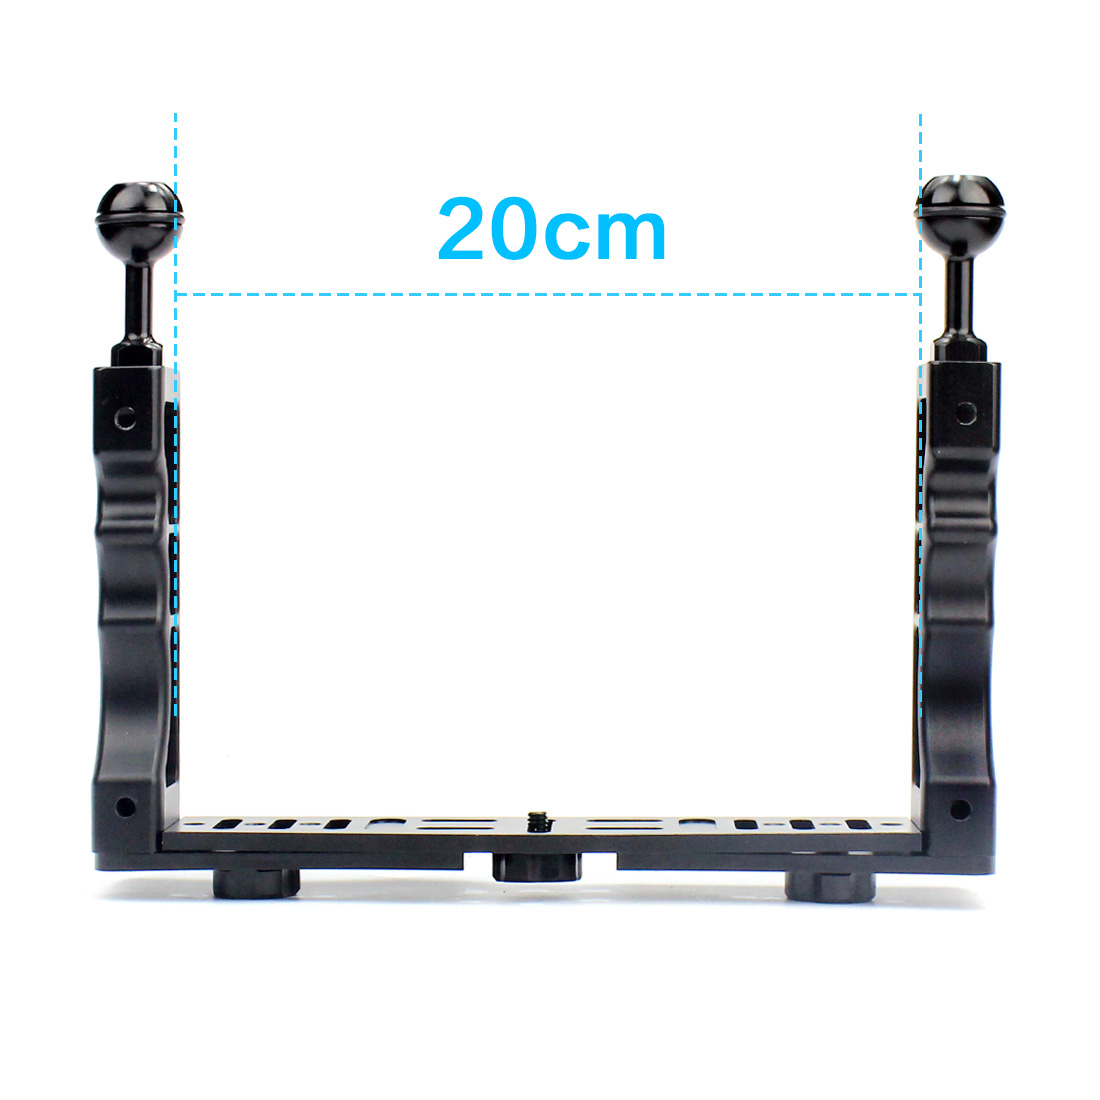 XT-XINTE Plastic Dual Mounting Adapter Compatible for Gopro Hero 7 6 5 4 Yi Action Sports Camera Double Vertical Bracket Tripod Handle Stand Holder